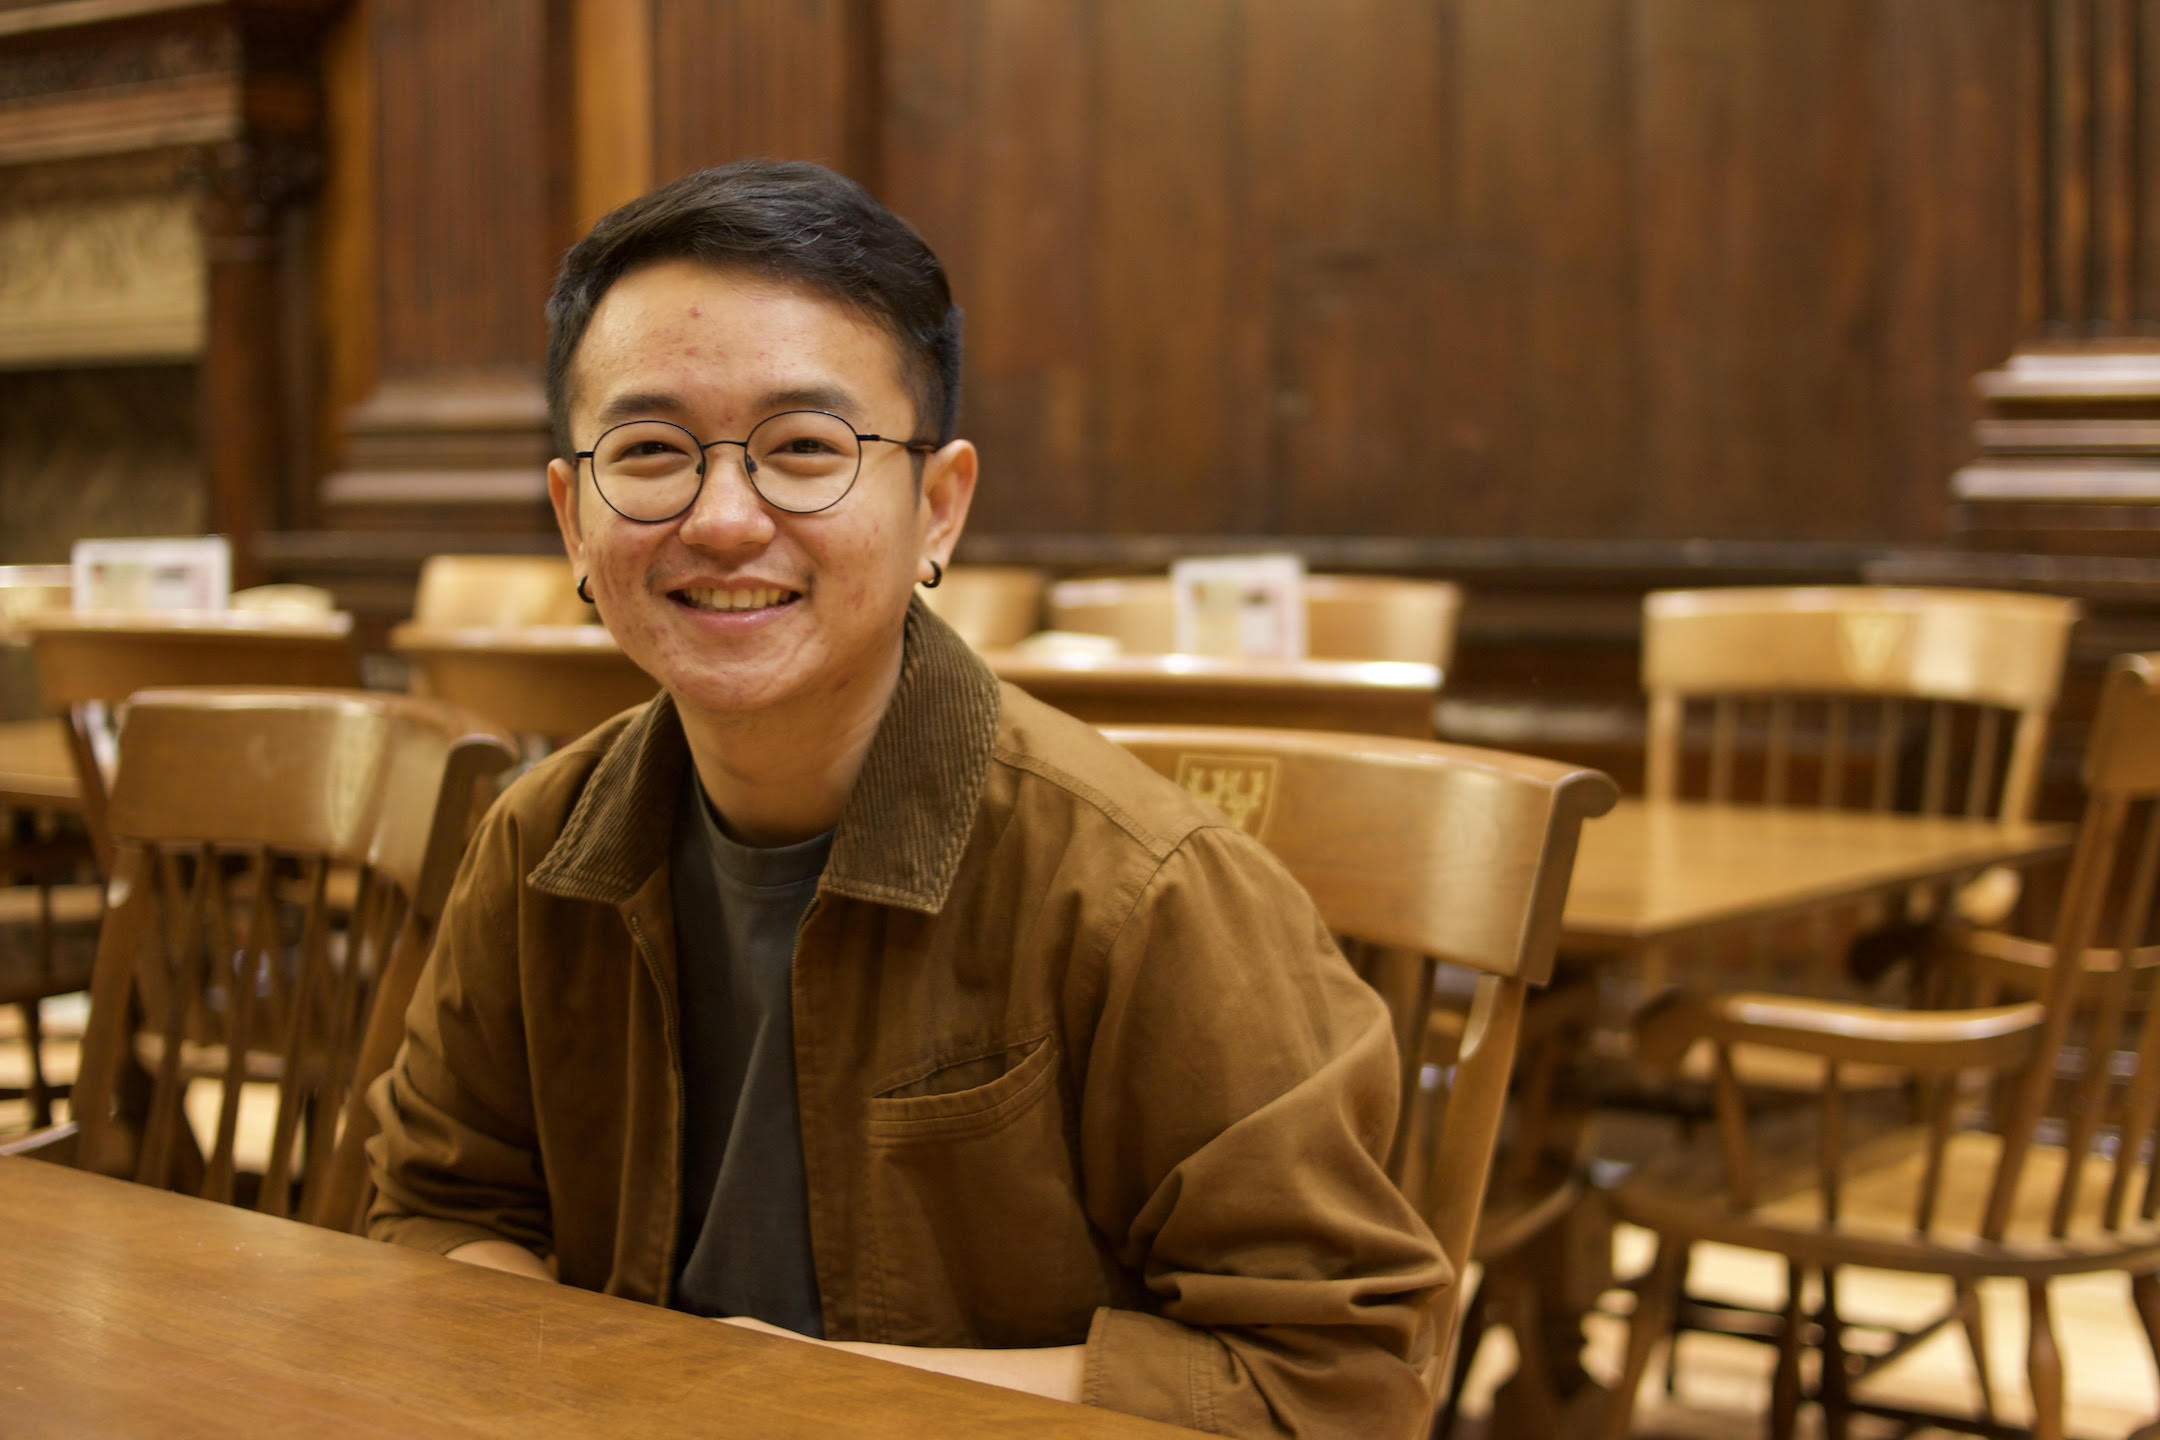 Meet the Five Harvard Students Who Testified in the Admissions Trial